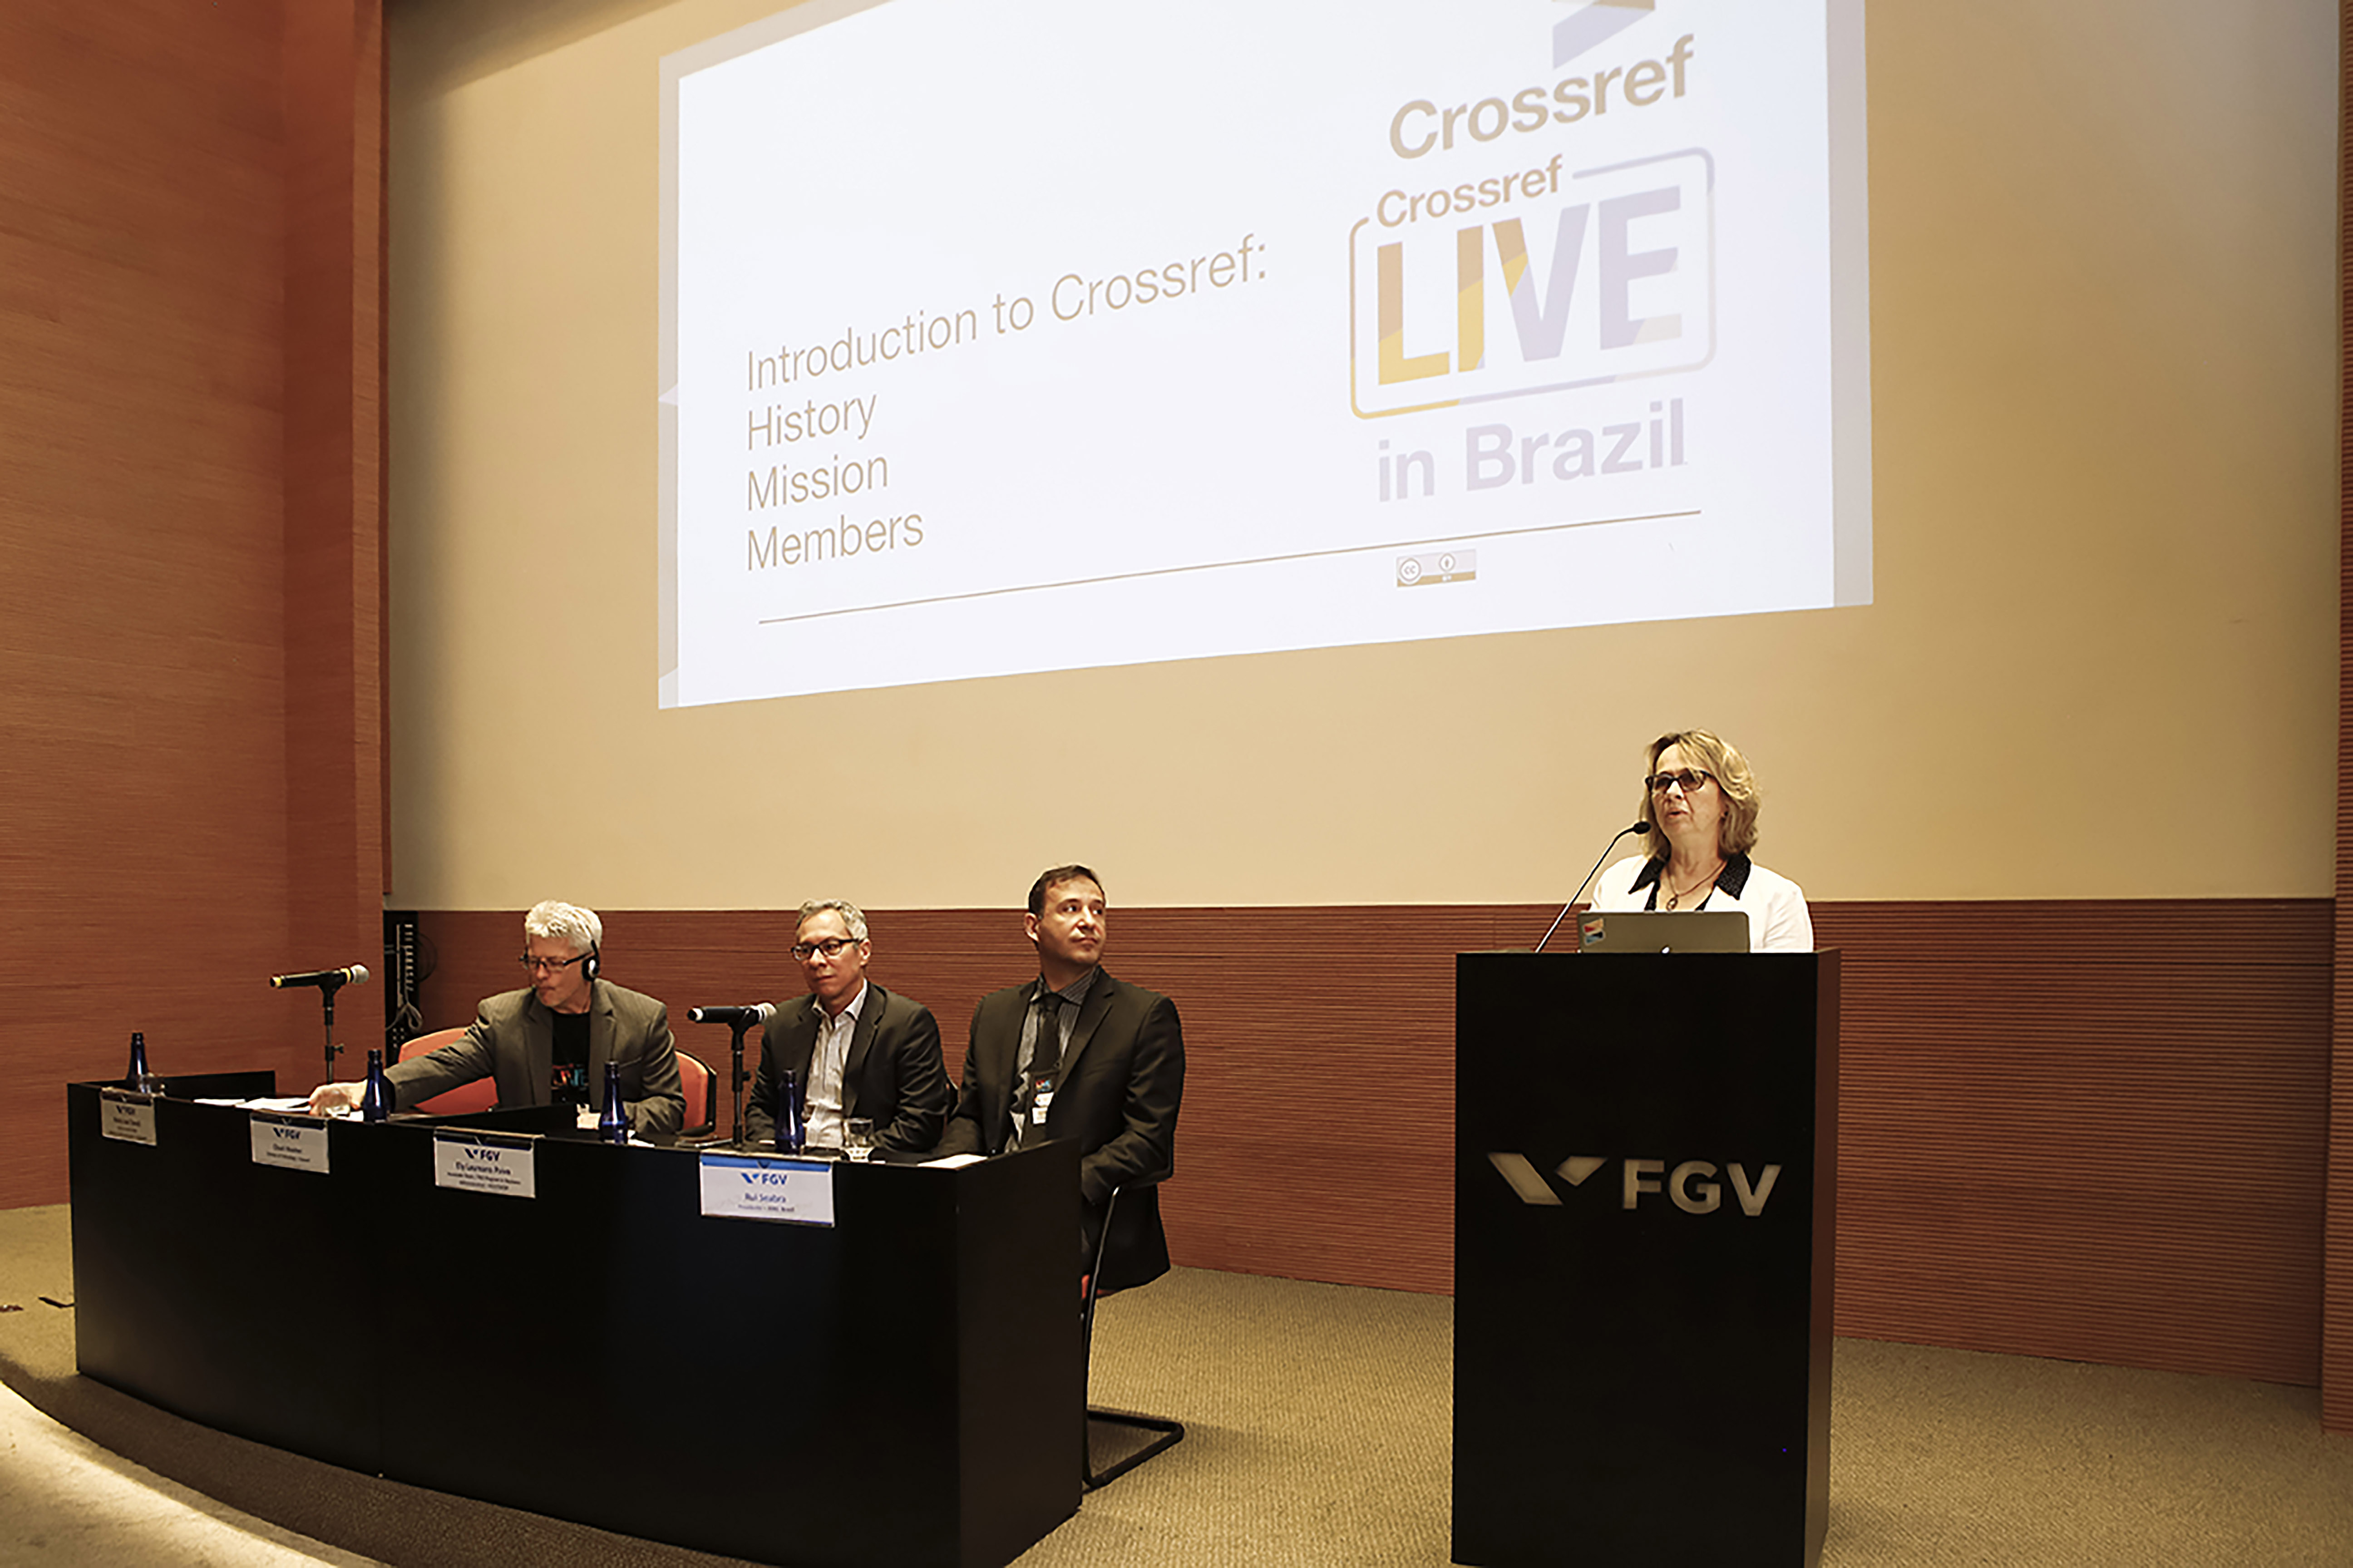 Speakers at Crossref LIVE Brazil